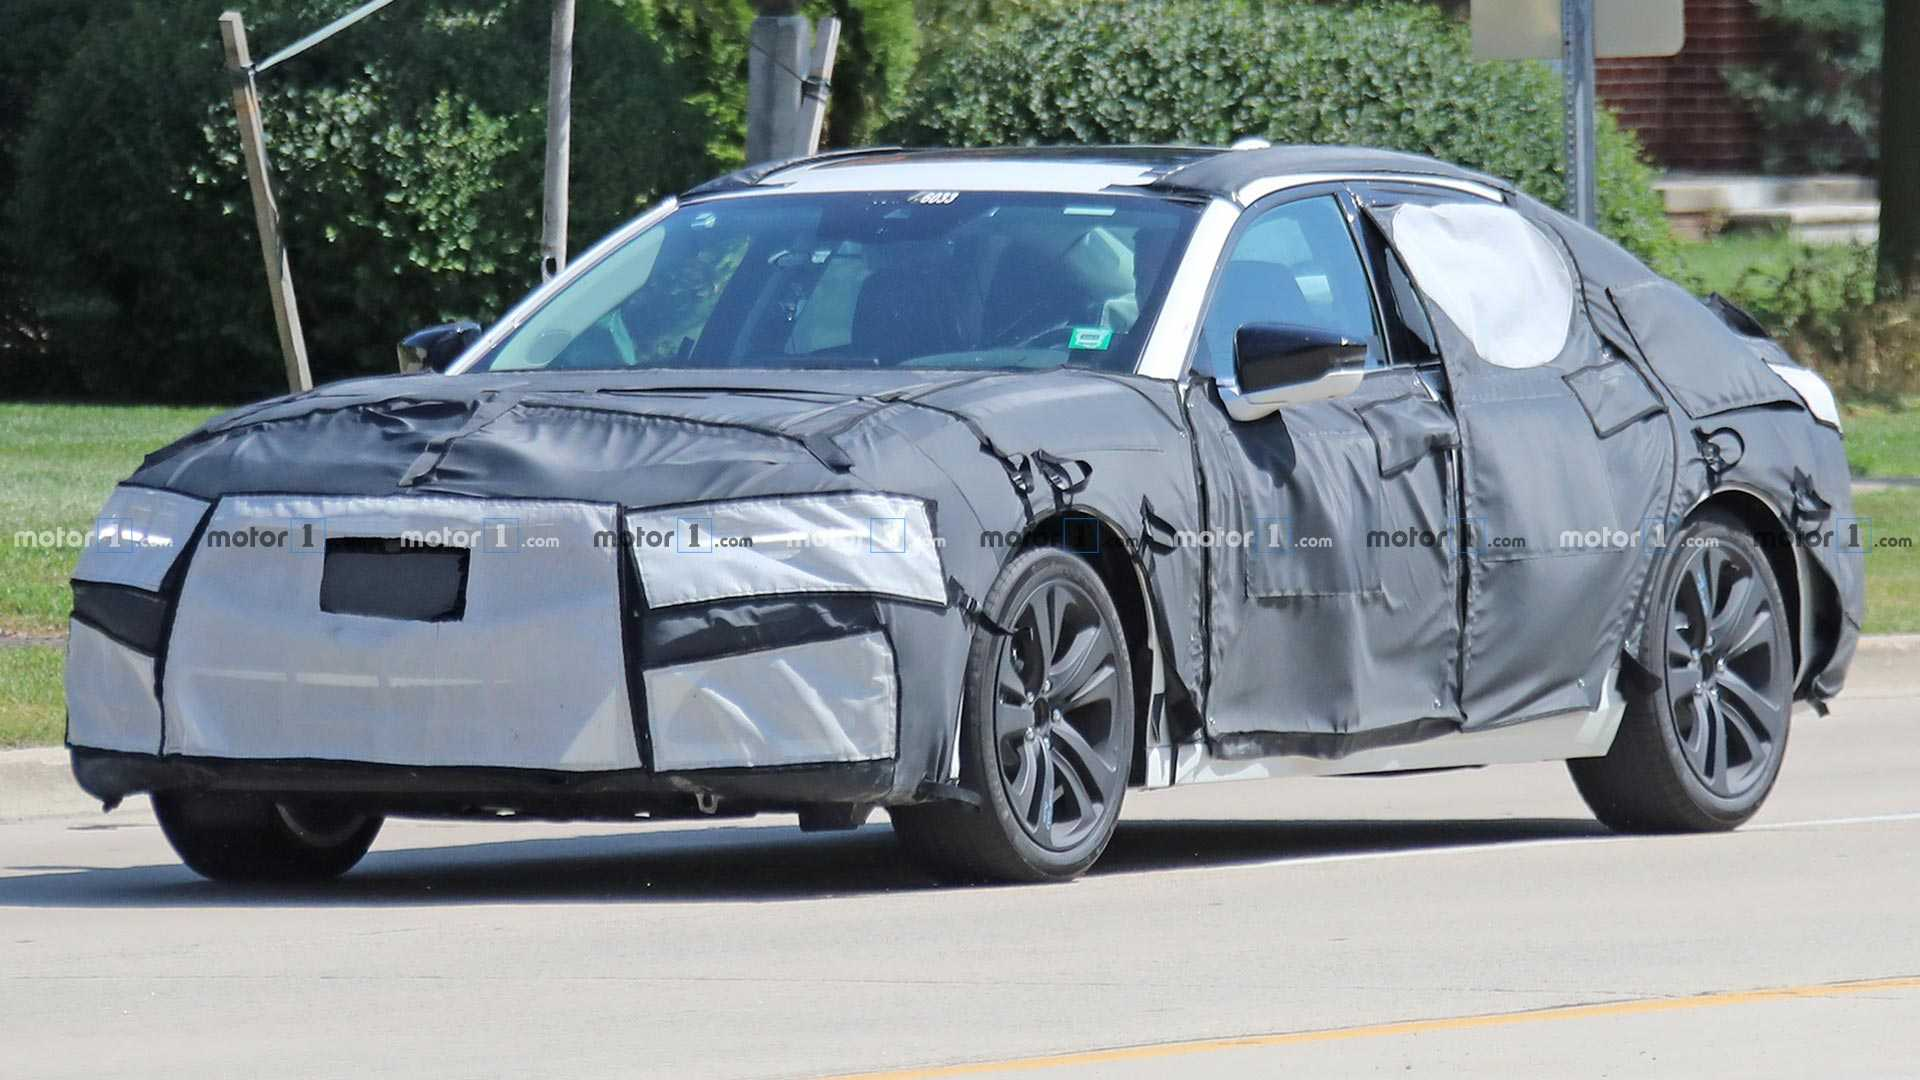 2021 Acura TLX Spied With Influences From Gorgeous Type S Concept 1920x1080